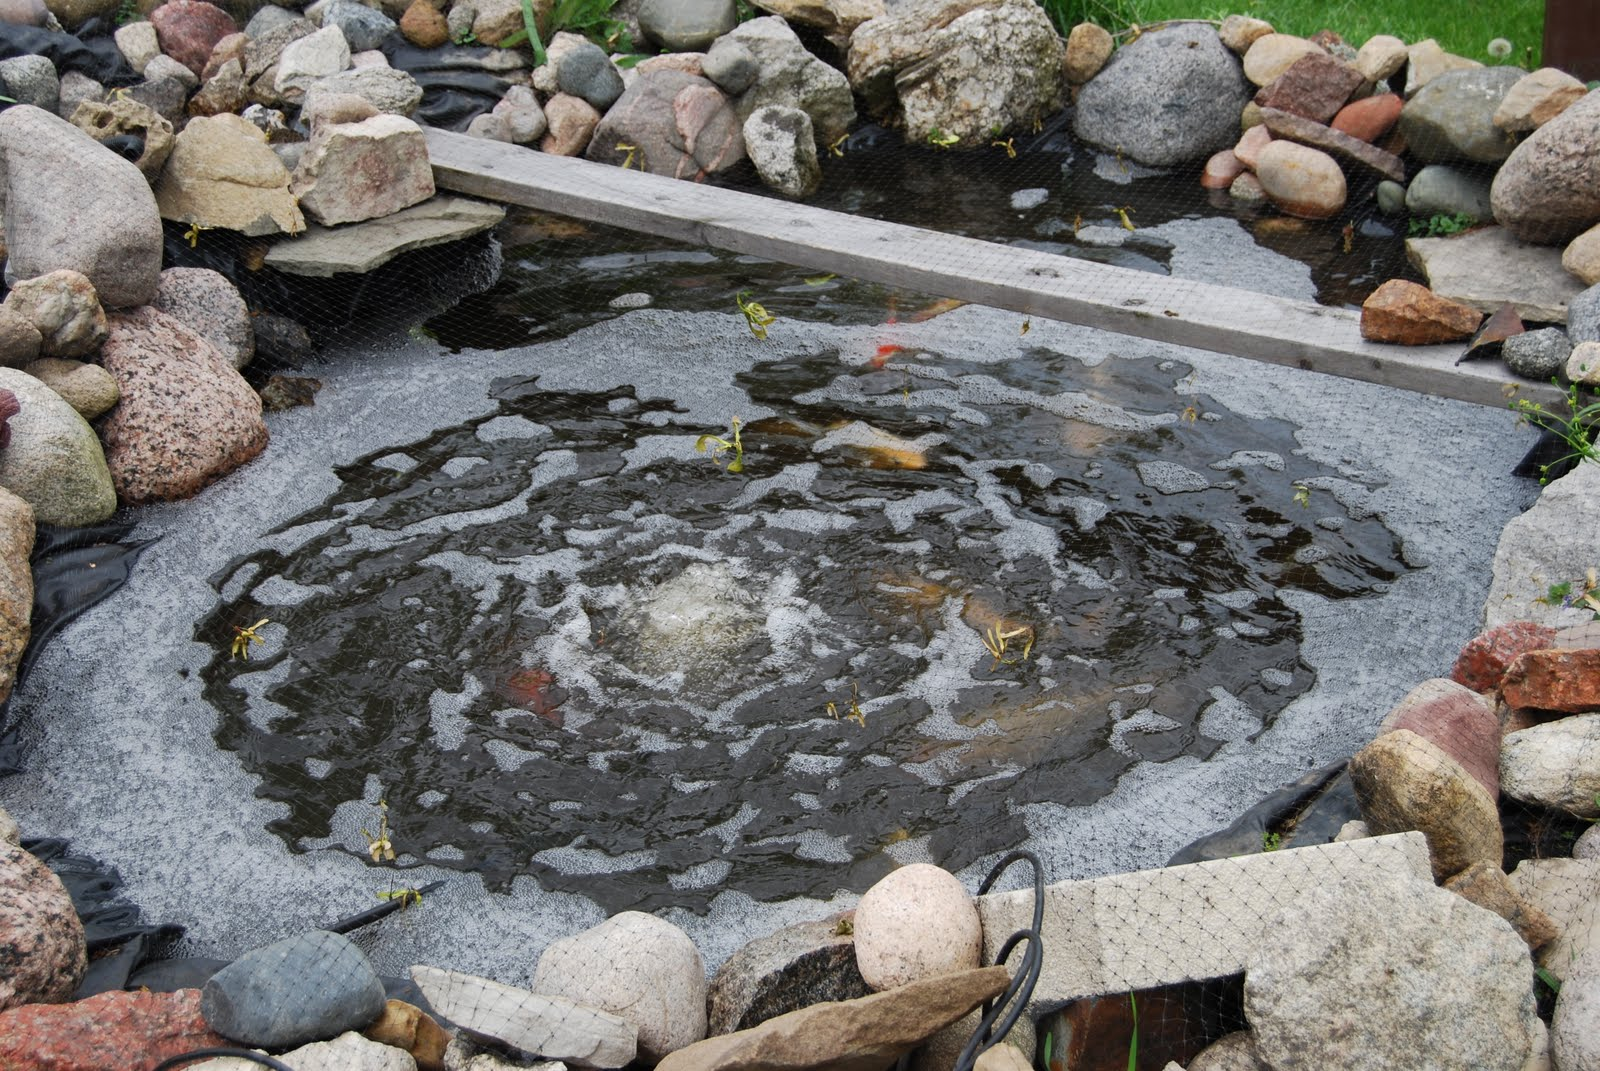 Musings of the sixties spring cleaning koi pond style for Koi pond cleaning